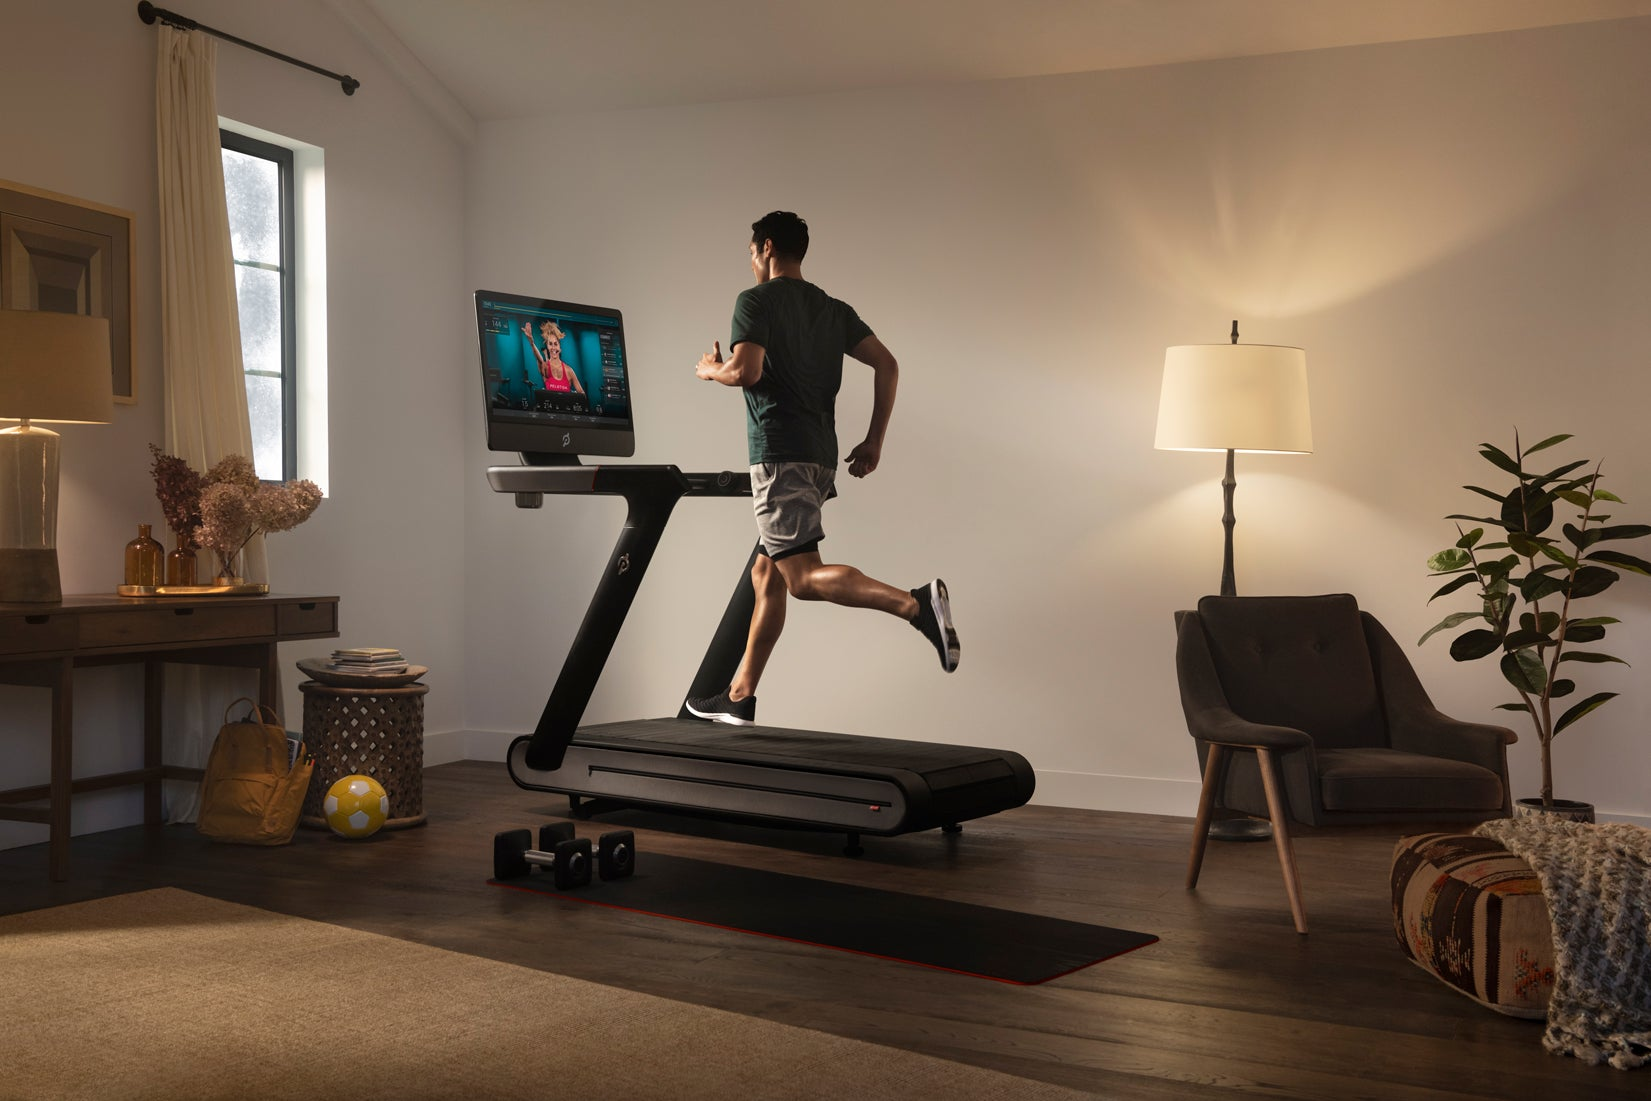 Is Peloton Interactive Ready to Grow Even More?